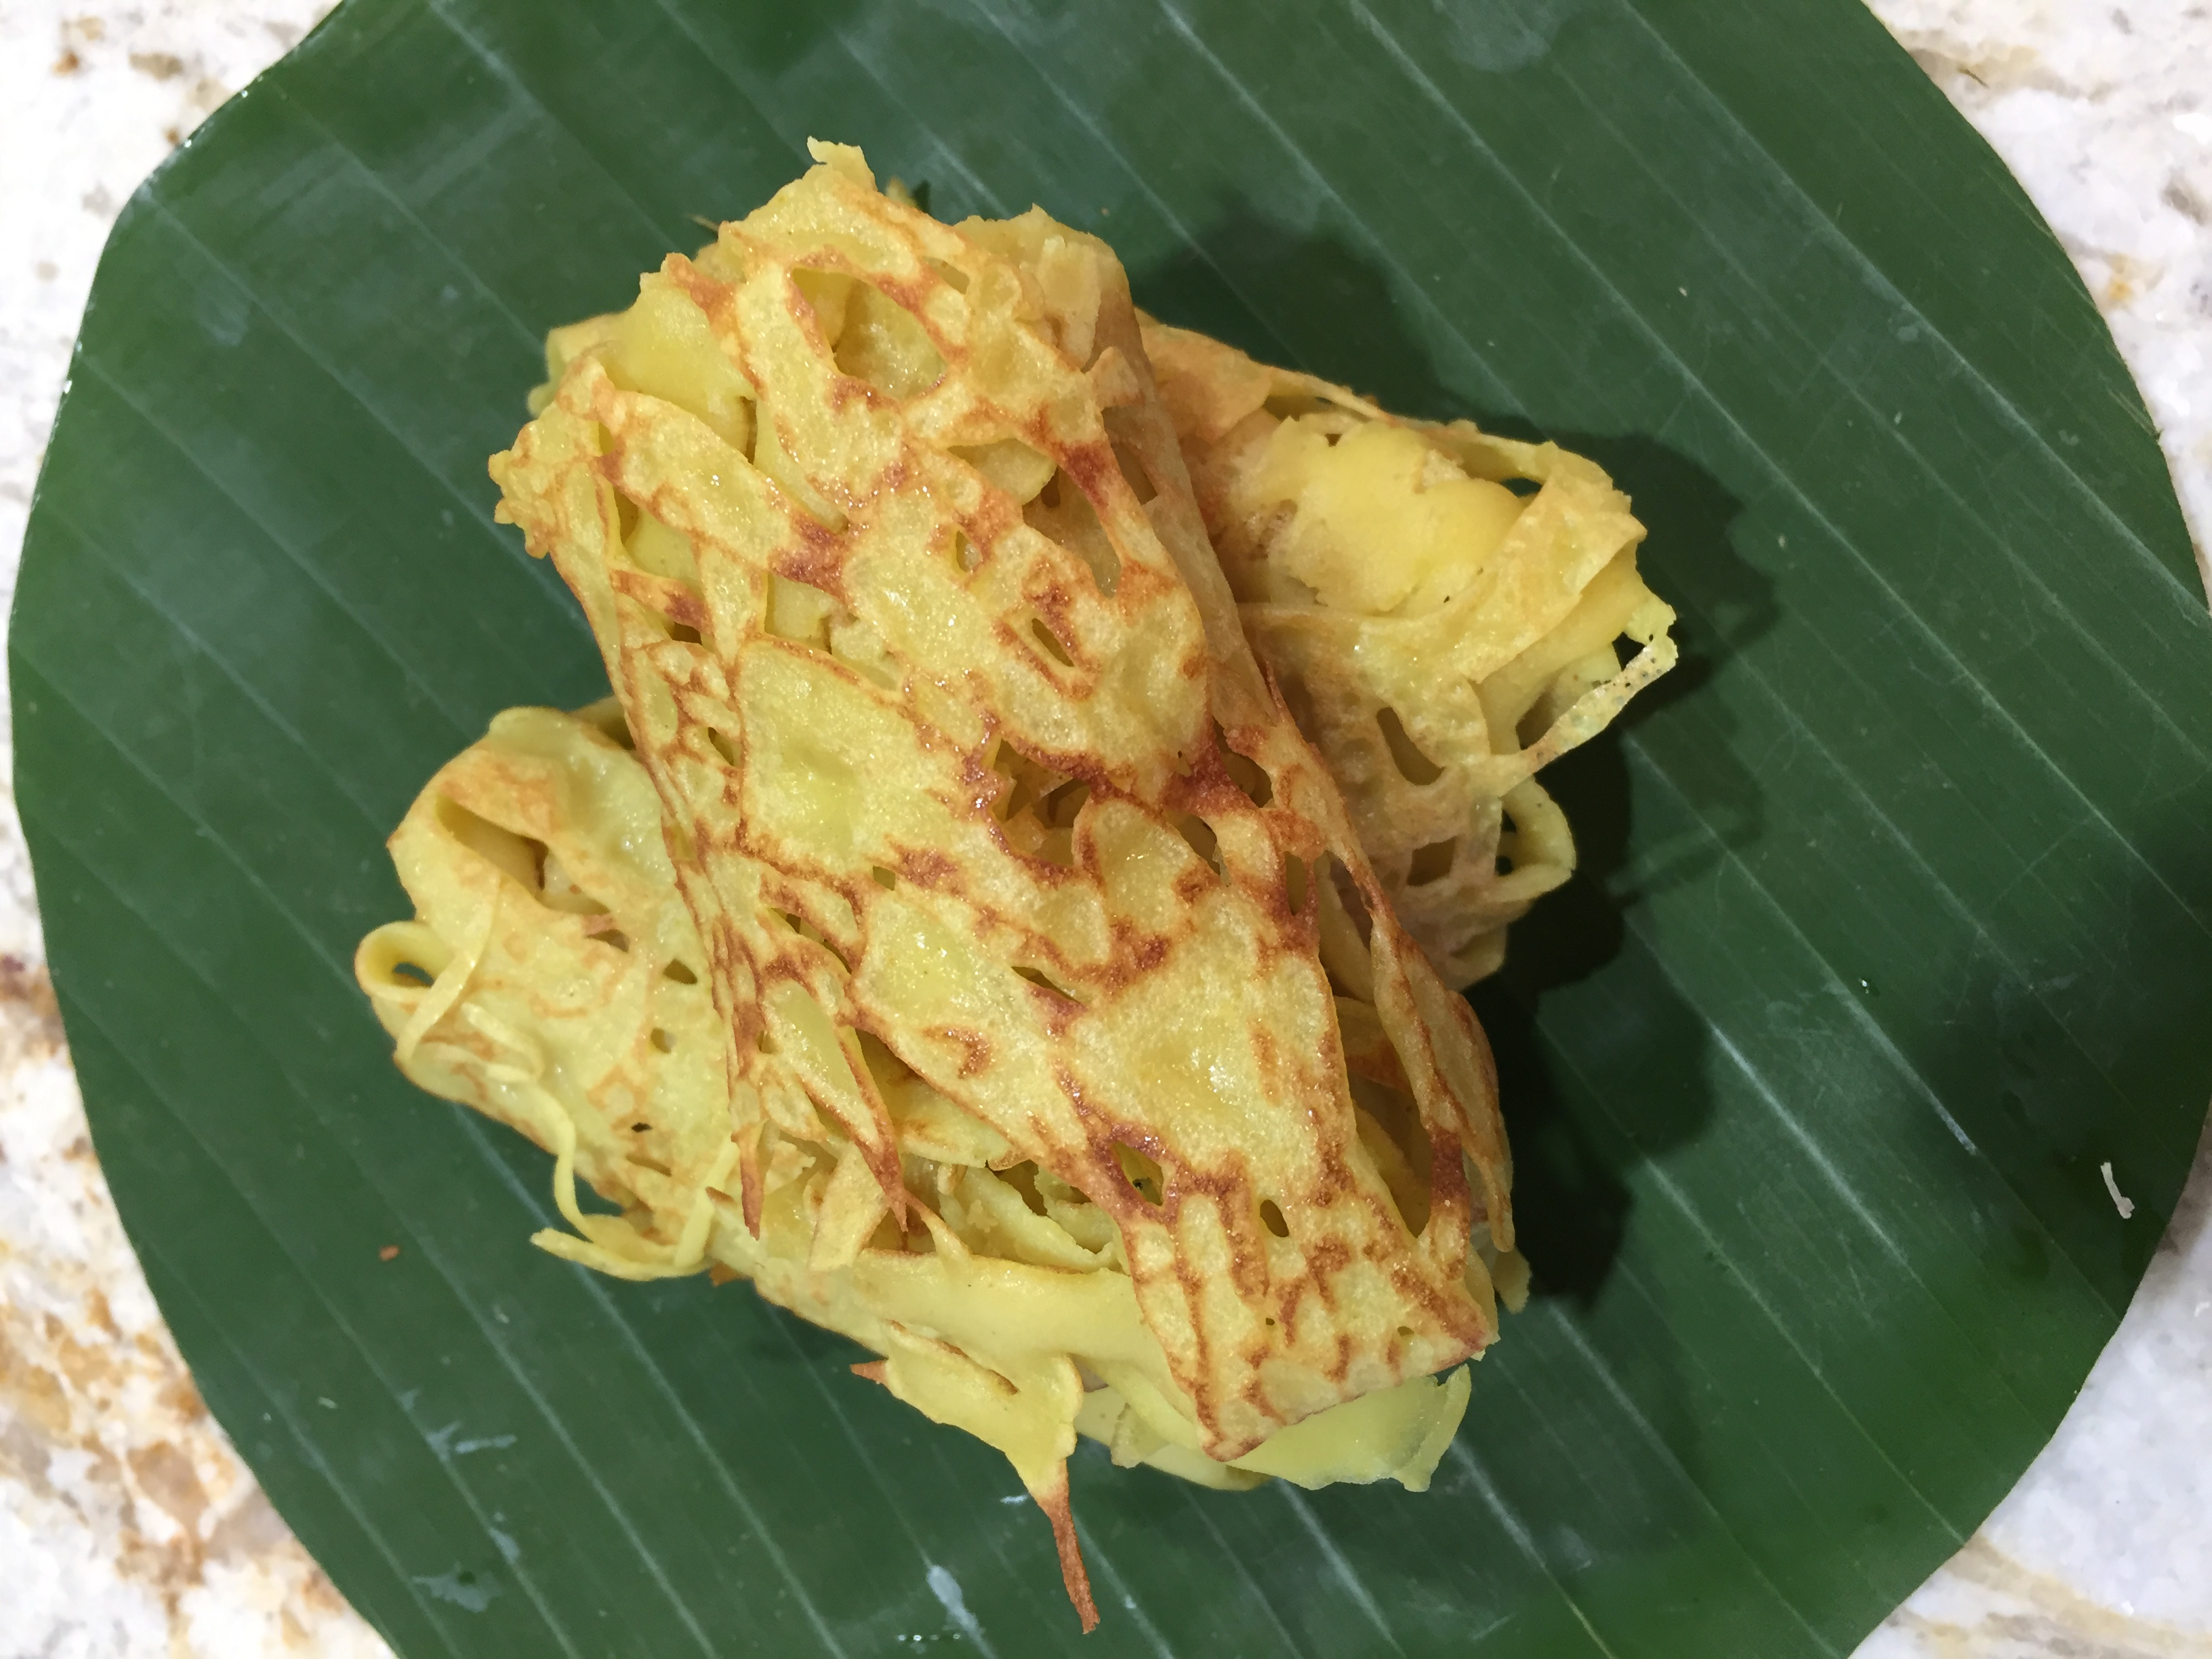 roti jala malaysian net pancake cooked and served on a banana leaf